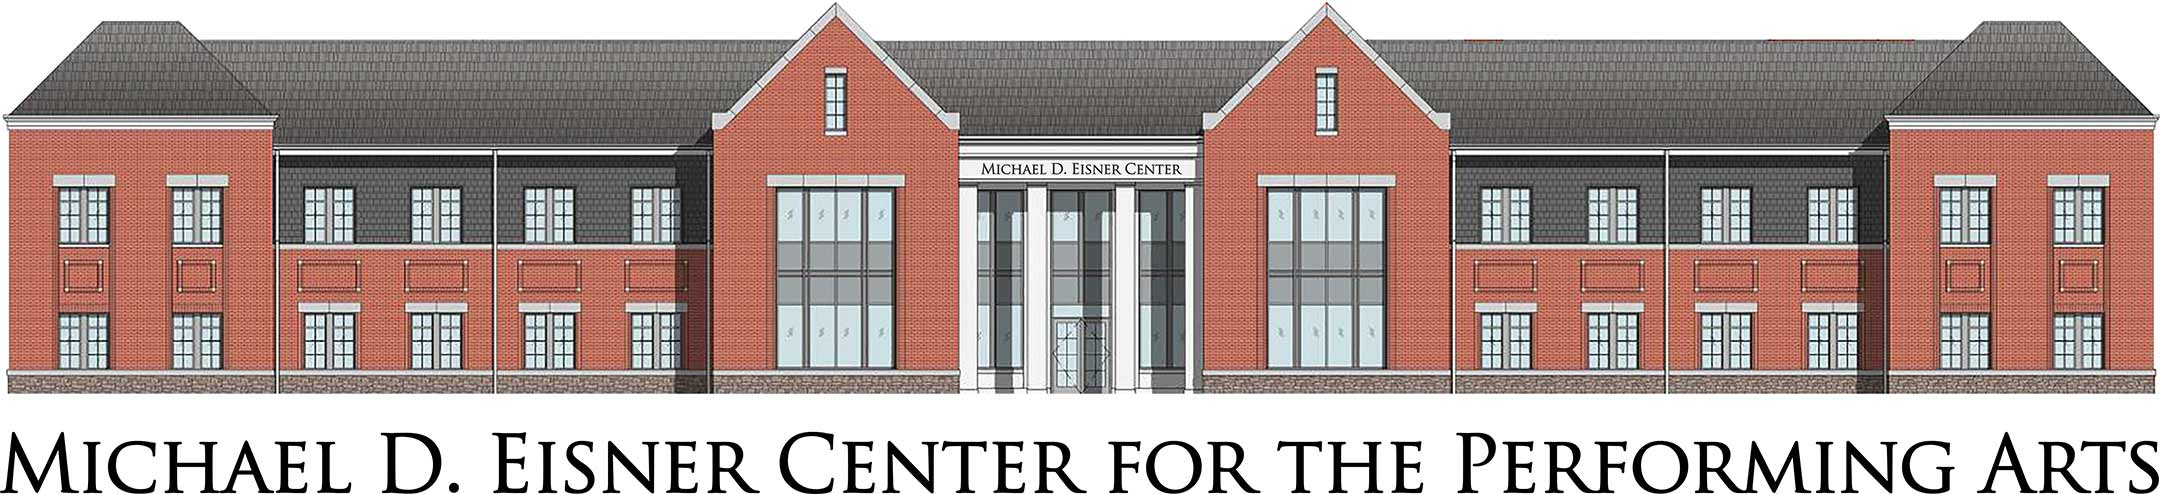 A rendering of the Eisner Center